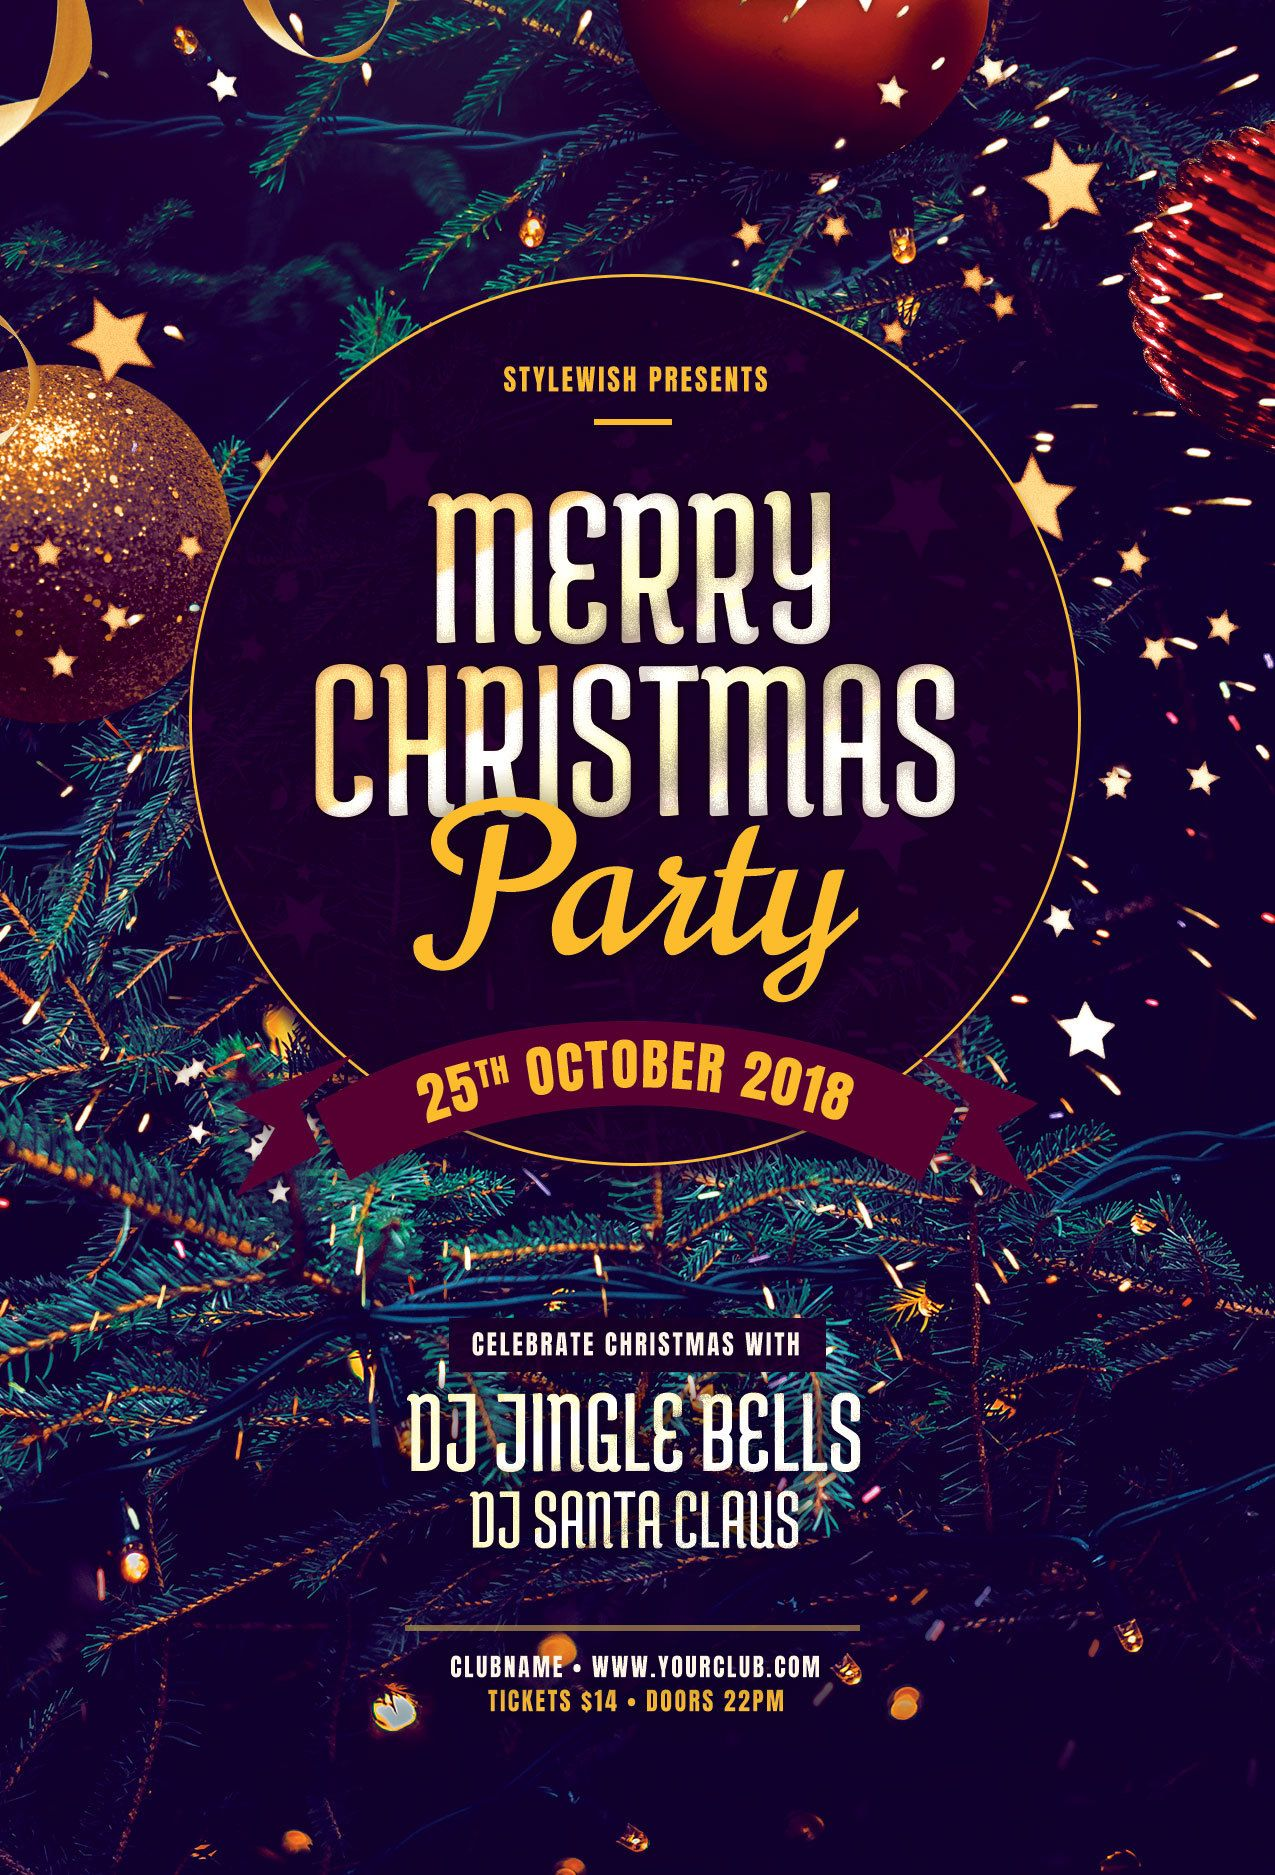 Merry Christmas Party Flyer by styleWish Download the PSD design